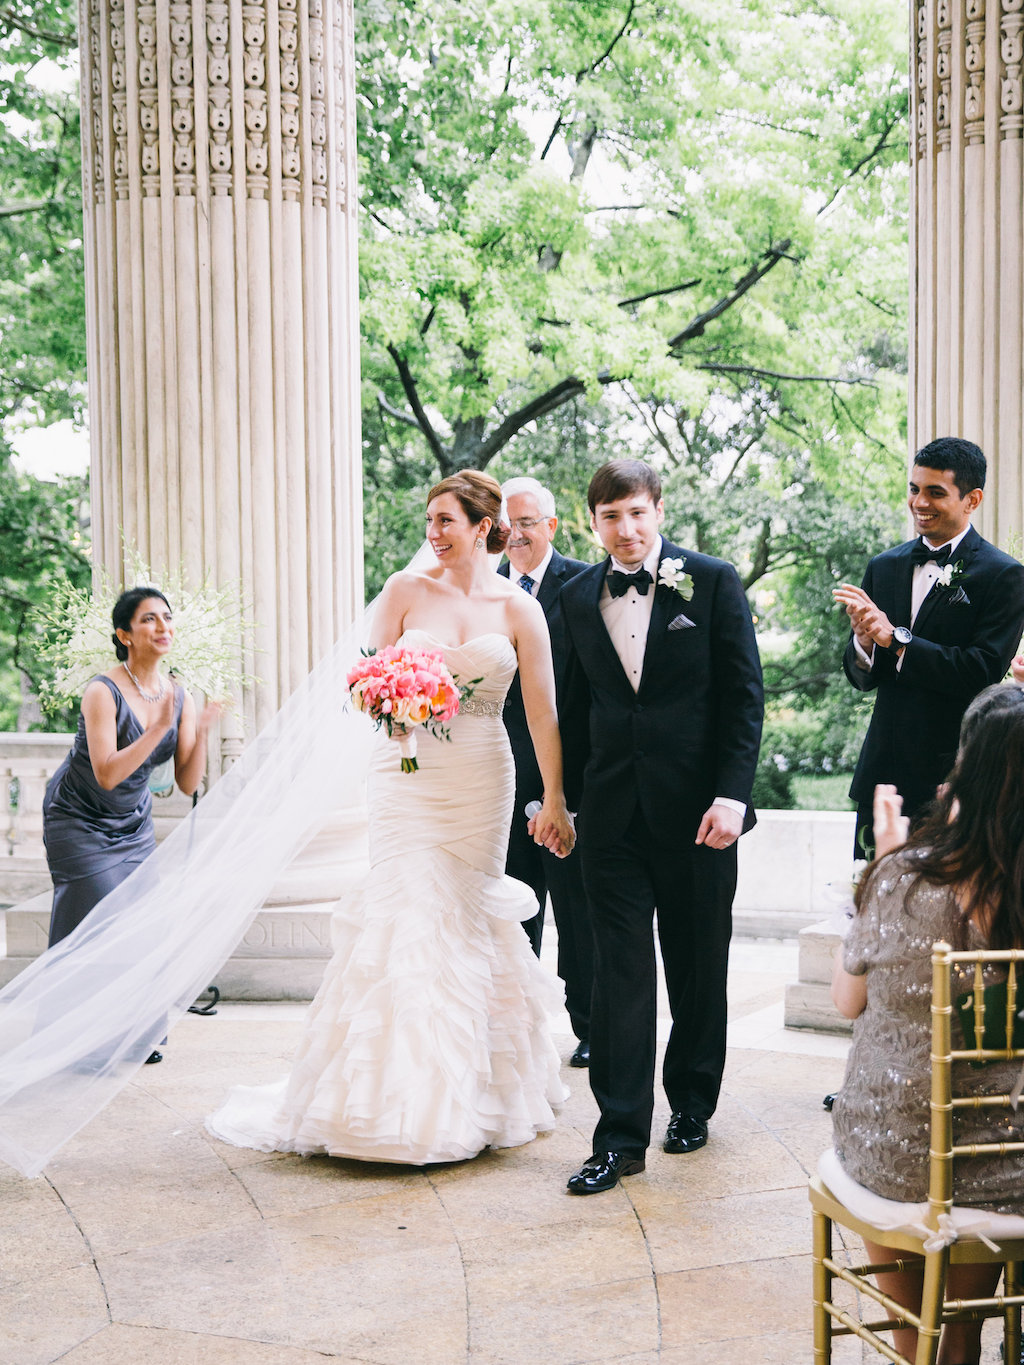 New orleans inspired wedding dresses best wedding dress 2017 spanish inspired wedding inspiration in new orleans 100 layer wedding gowns 2016 ombrellifo Images